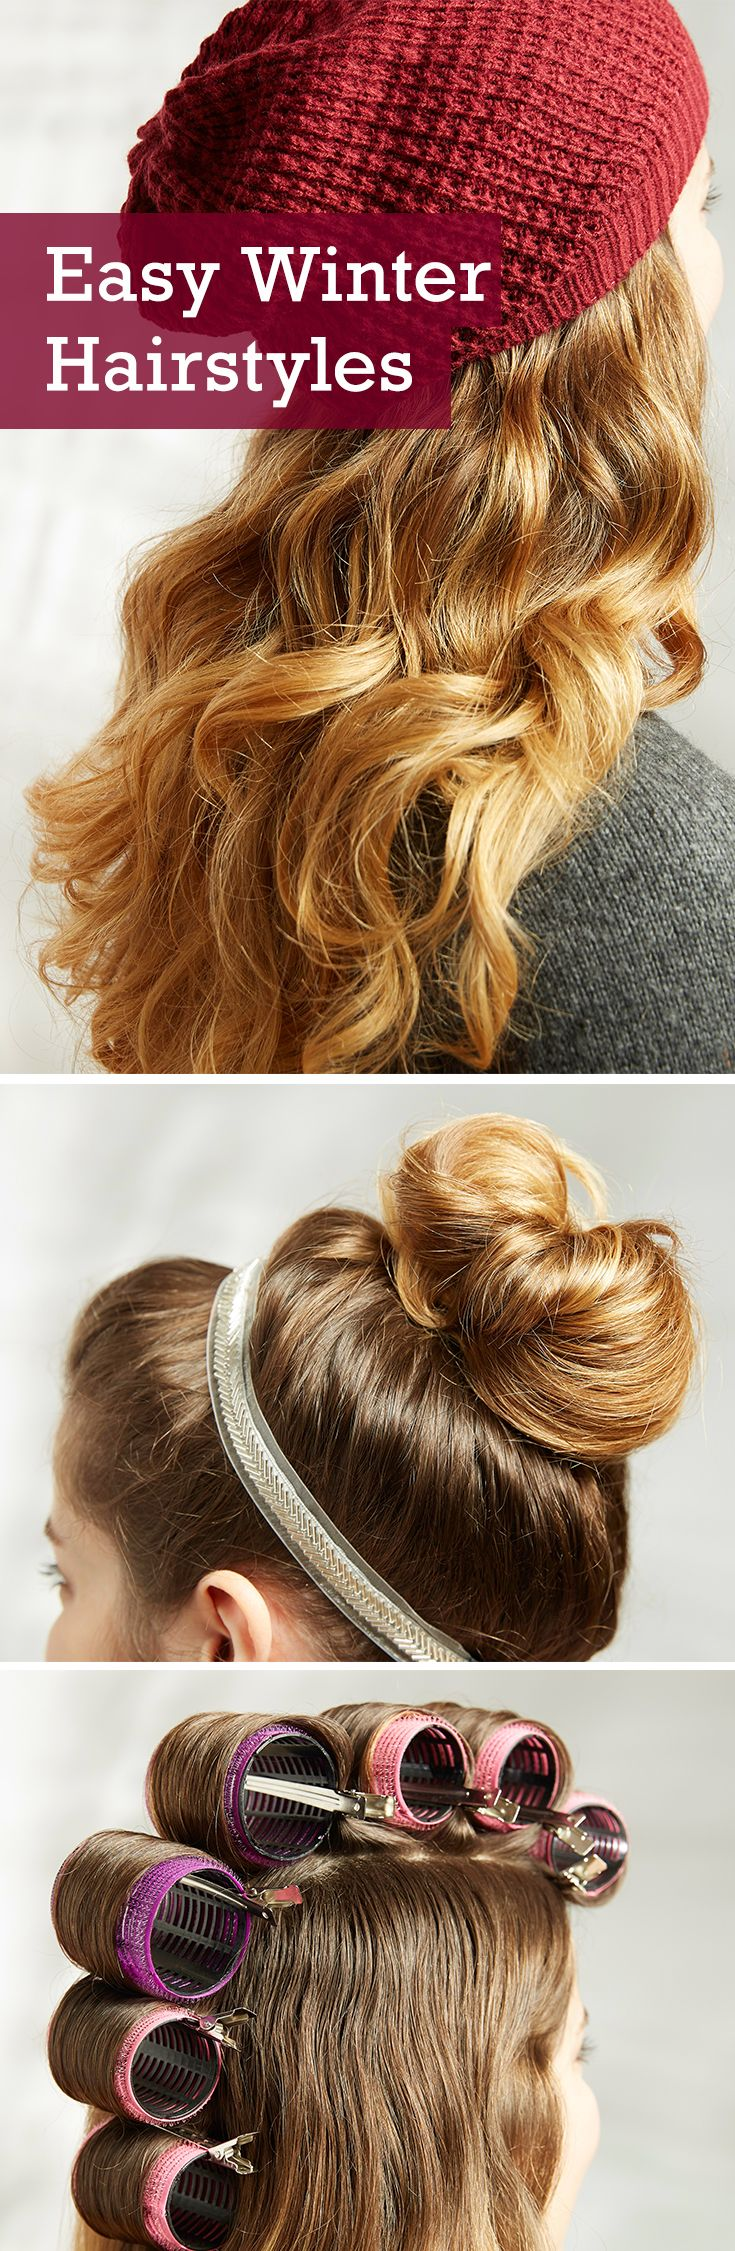 Easy updos and no fuss styles with our top winter hairstyles from